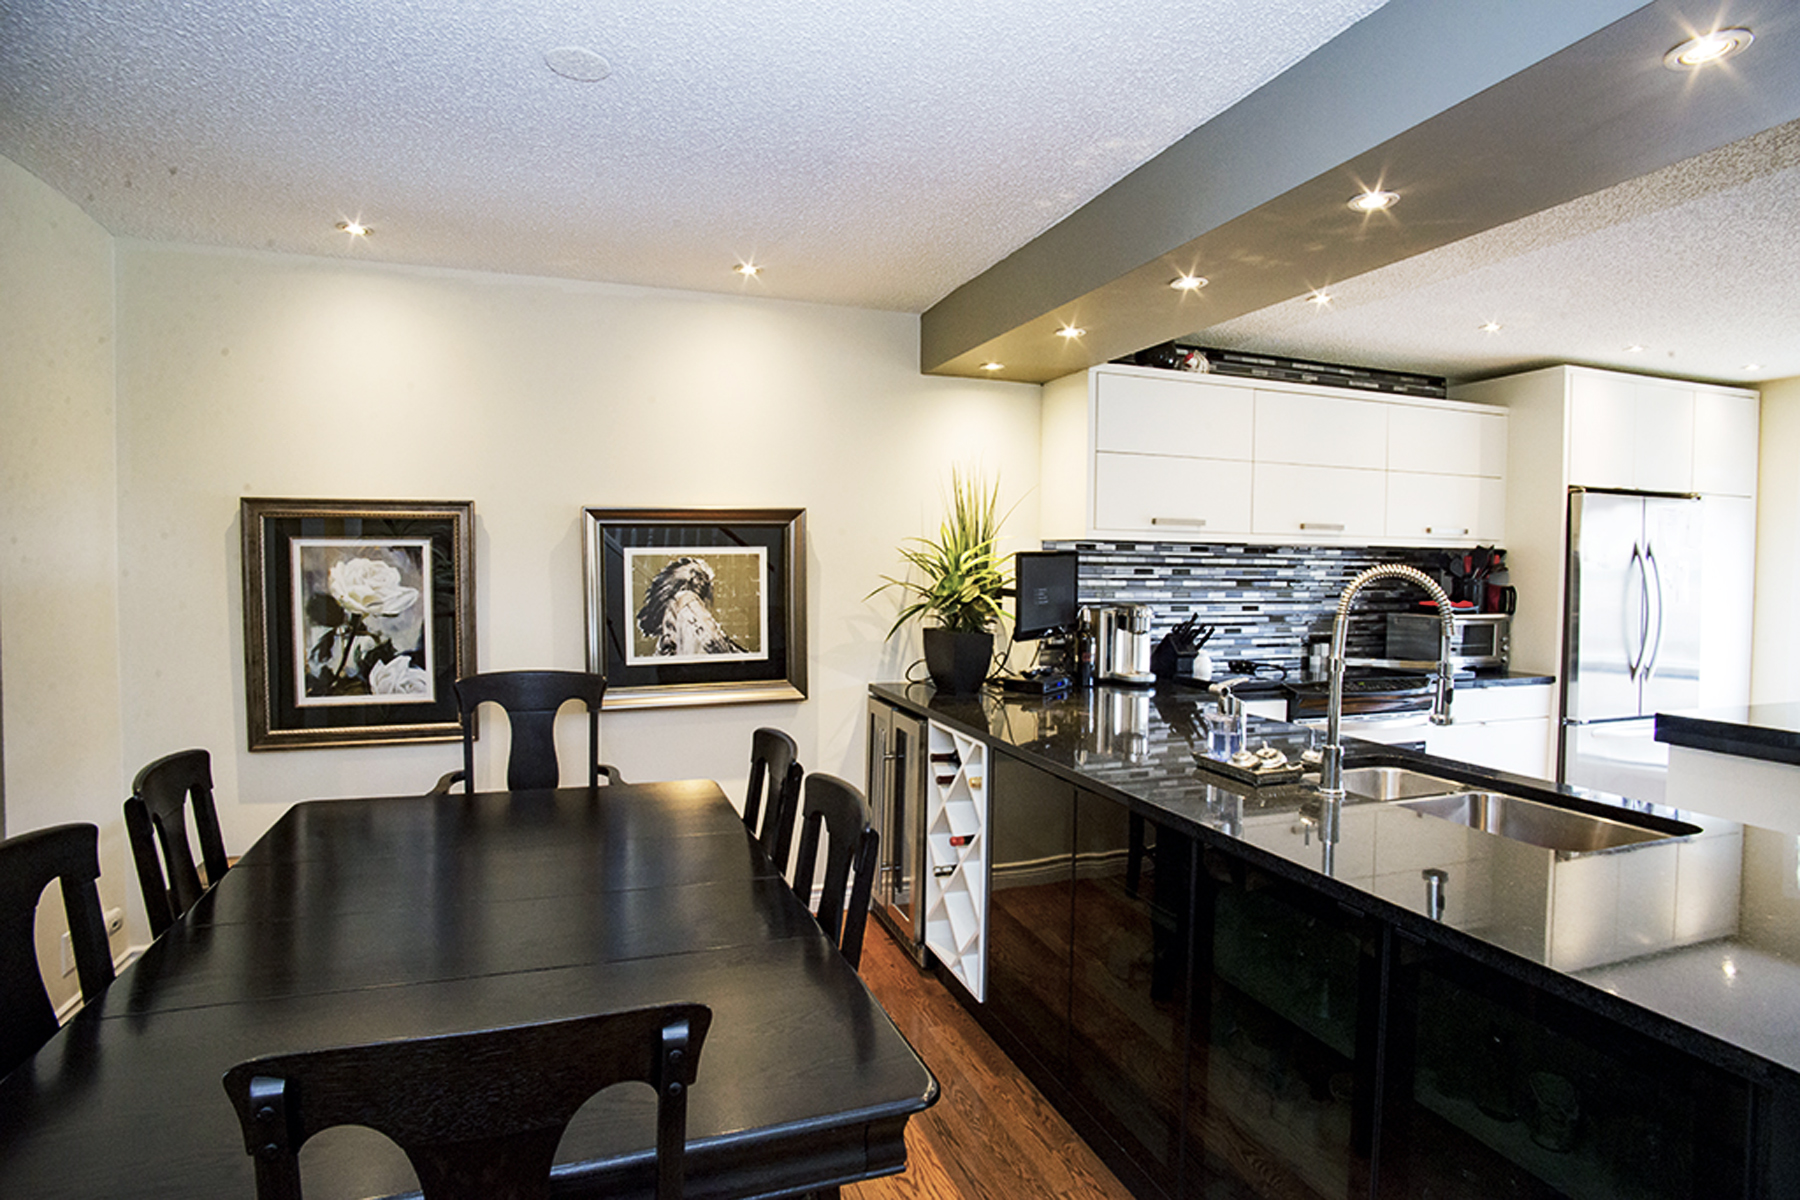 Point McKay Calgary Luxury Condo Kitchen Diner Renovation